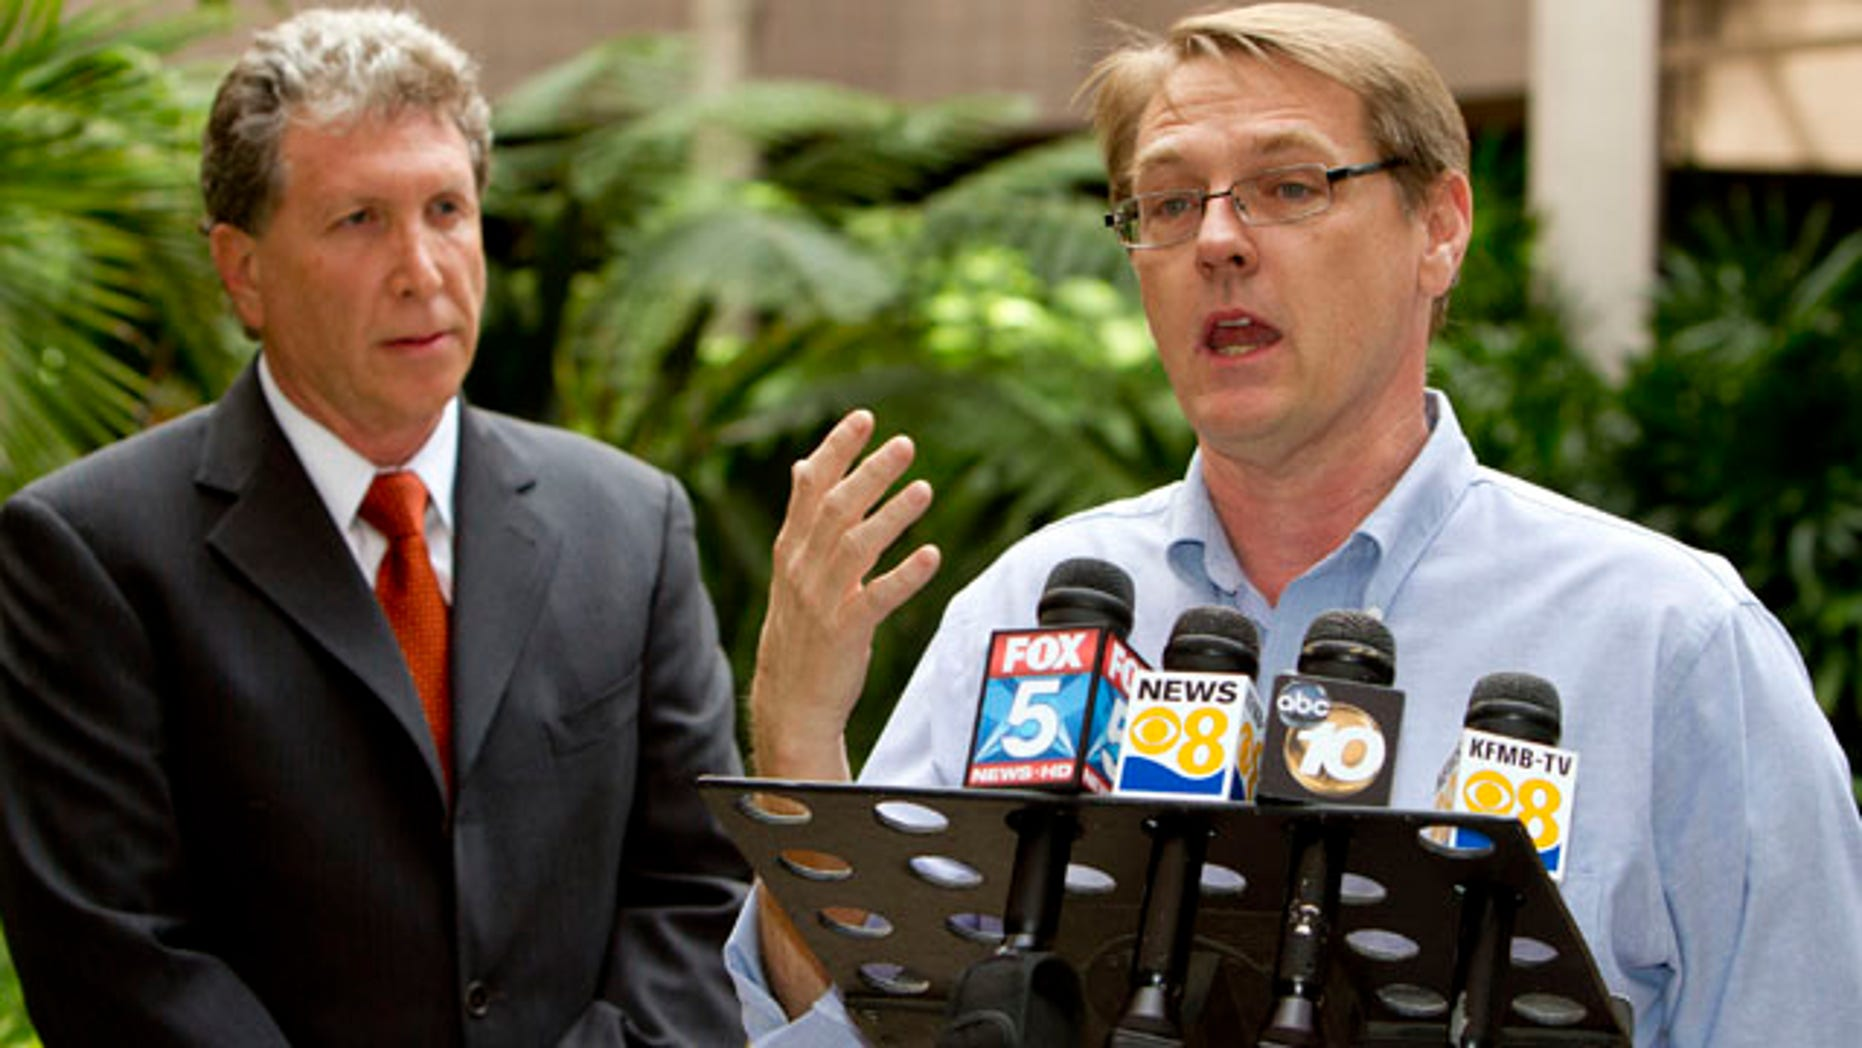 Oct. 24, 2010: SNAP National Director David Clohessy, right, and attorney Irwin Zalkin speak with members of the media during a news conference Sunday in San Diego. Attorneys for nearly 150 people who claim sexual abuse by Roman Catholic priests released thousands of pages of previously sealed internal church documents Sunday that detail complaints against the clerics and include medical records and correspondence between priests and their superiors.